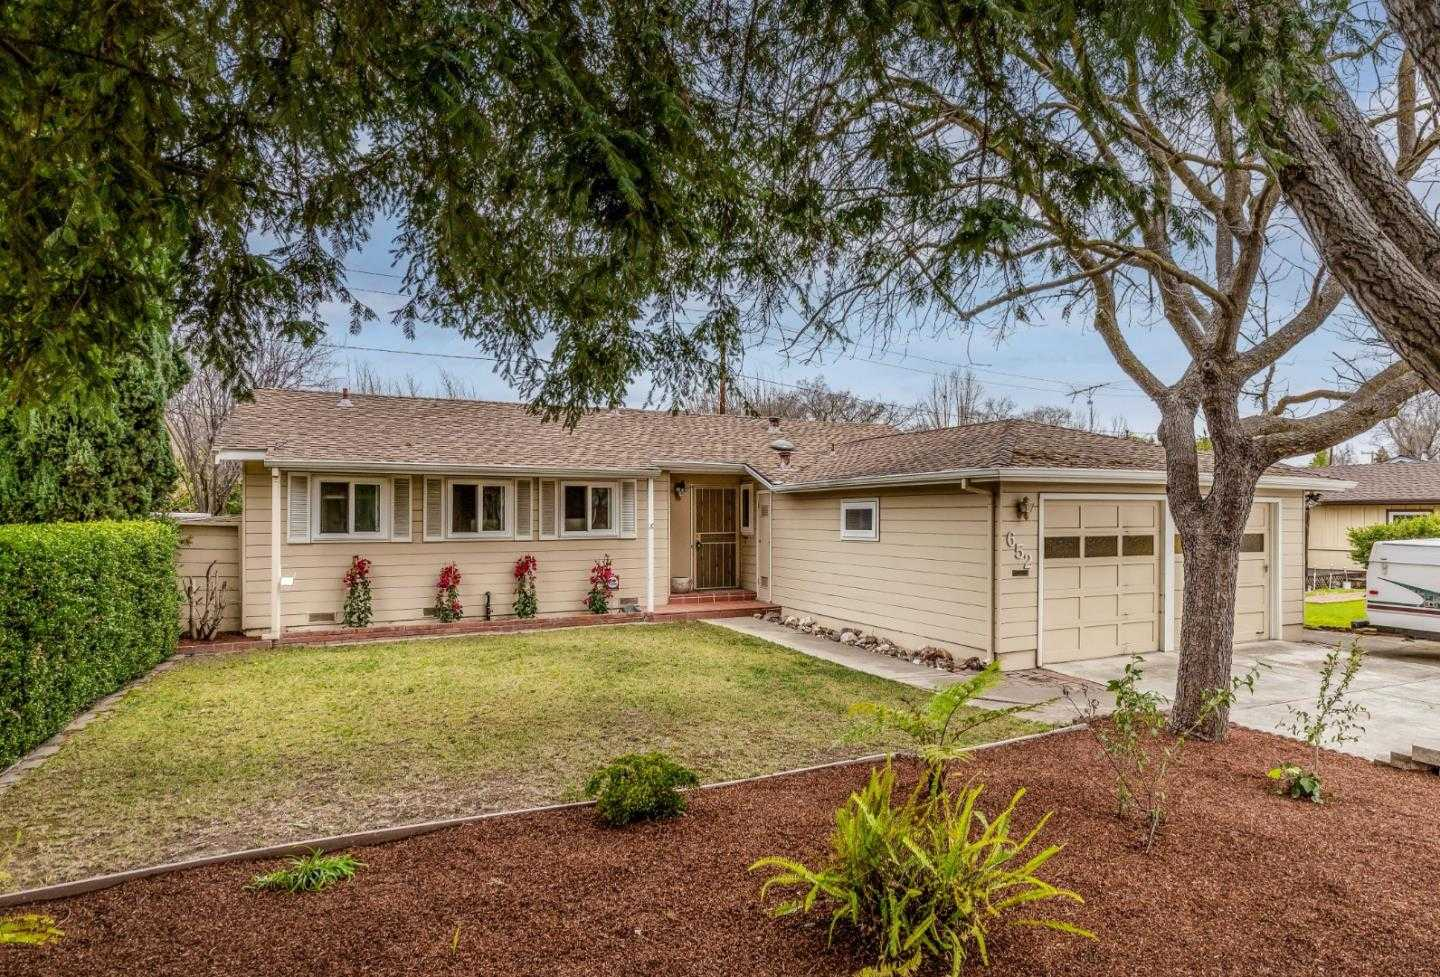 $1,888,000 - 3Br/2Ba -  for Sale in Mountain View